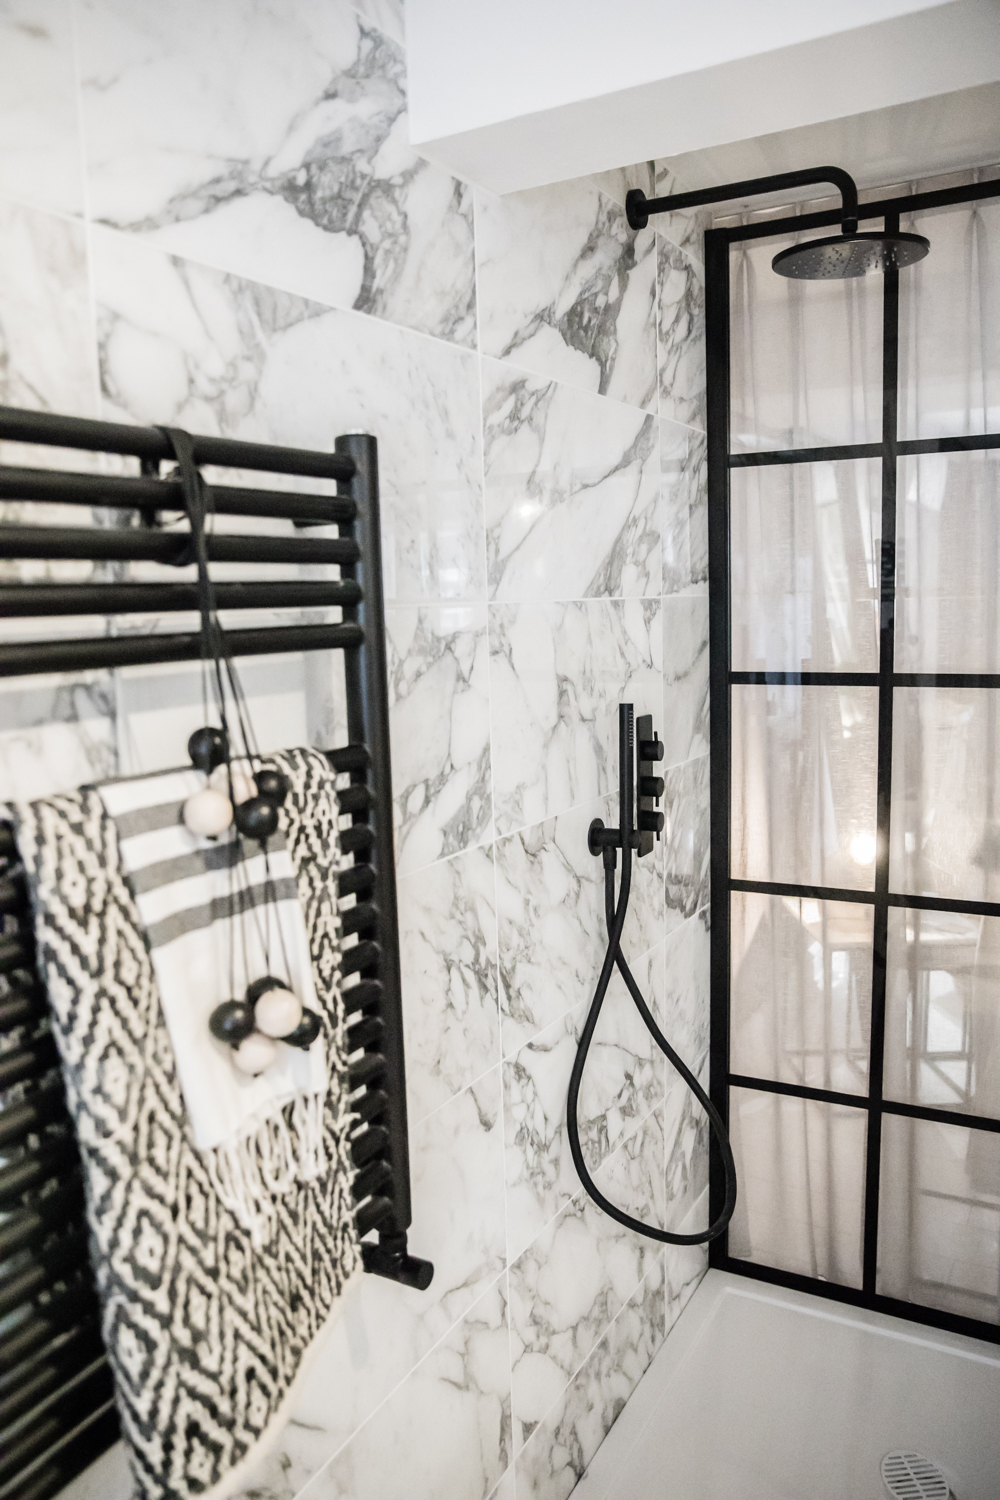 Swooning over the Crittall shower screen and black taps etc.